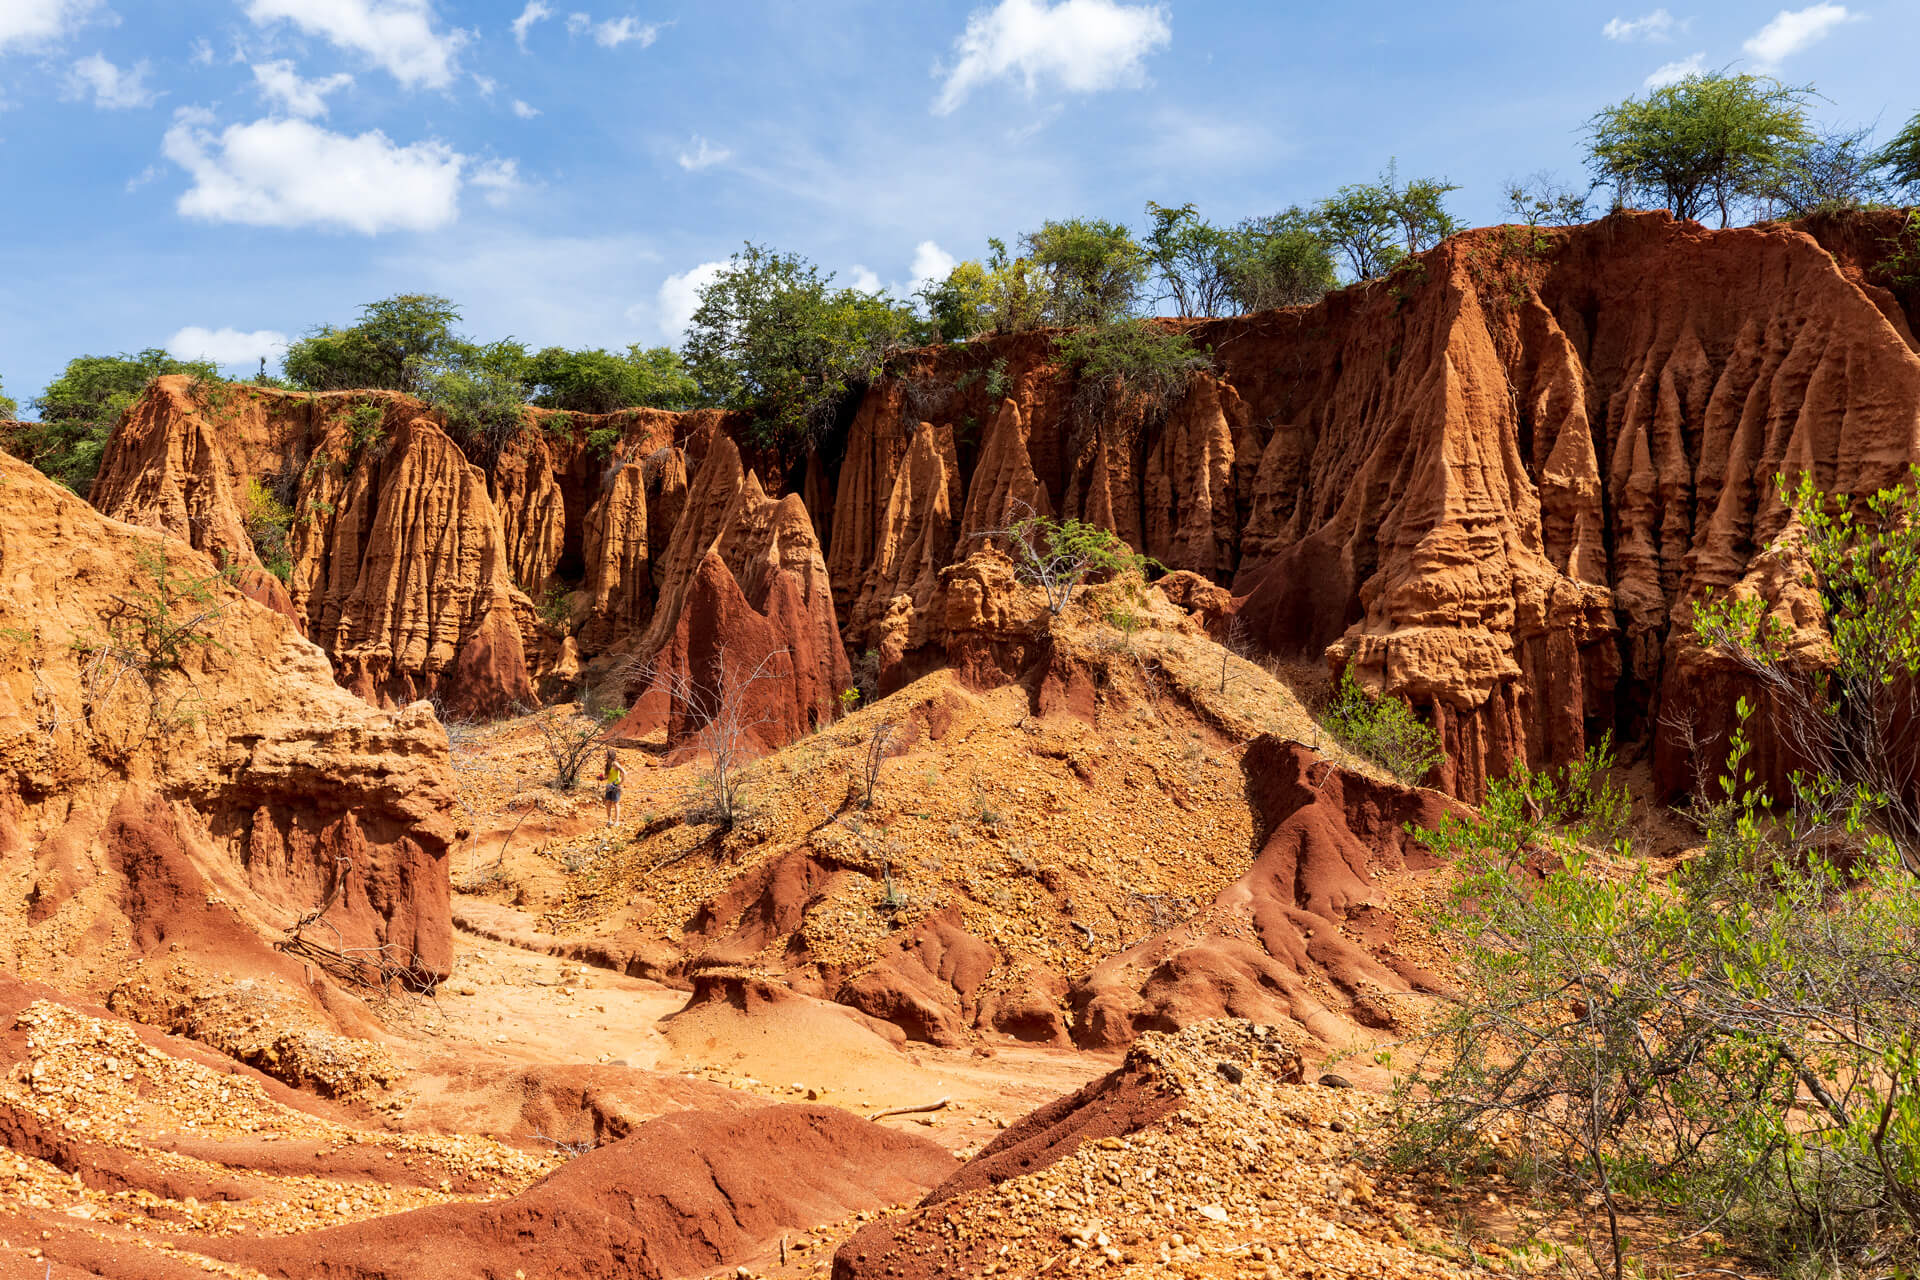 Ethiopia-trip-adventure-nature-canyon-Yabelo-city-forest-wildlife